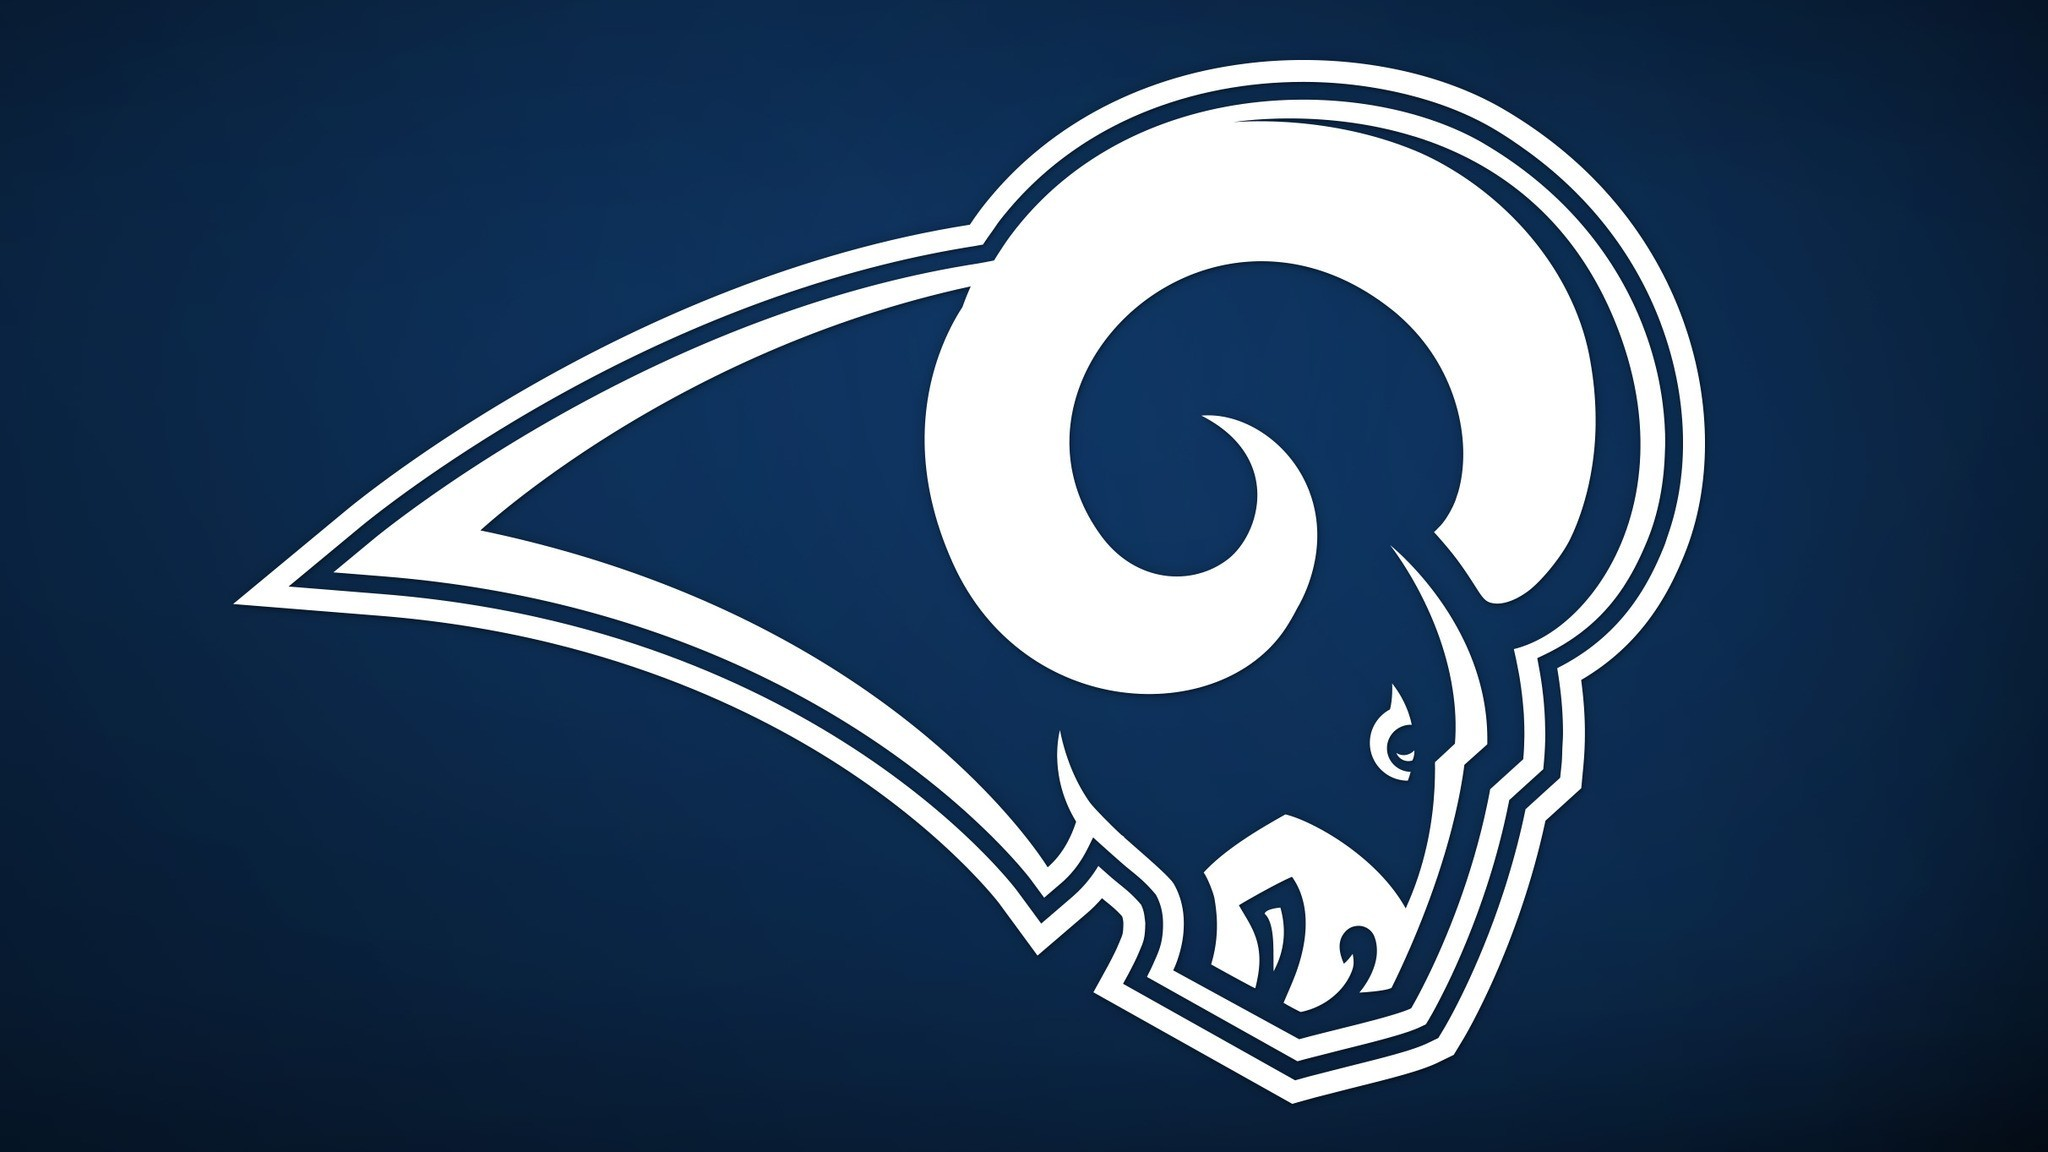 2048x1152 Delay Of New Stadium Opening Could Affect The Rebranding Rams Including Uniforms